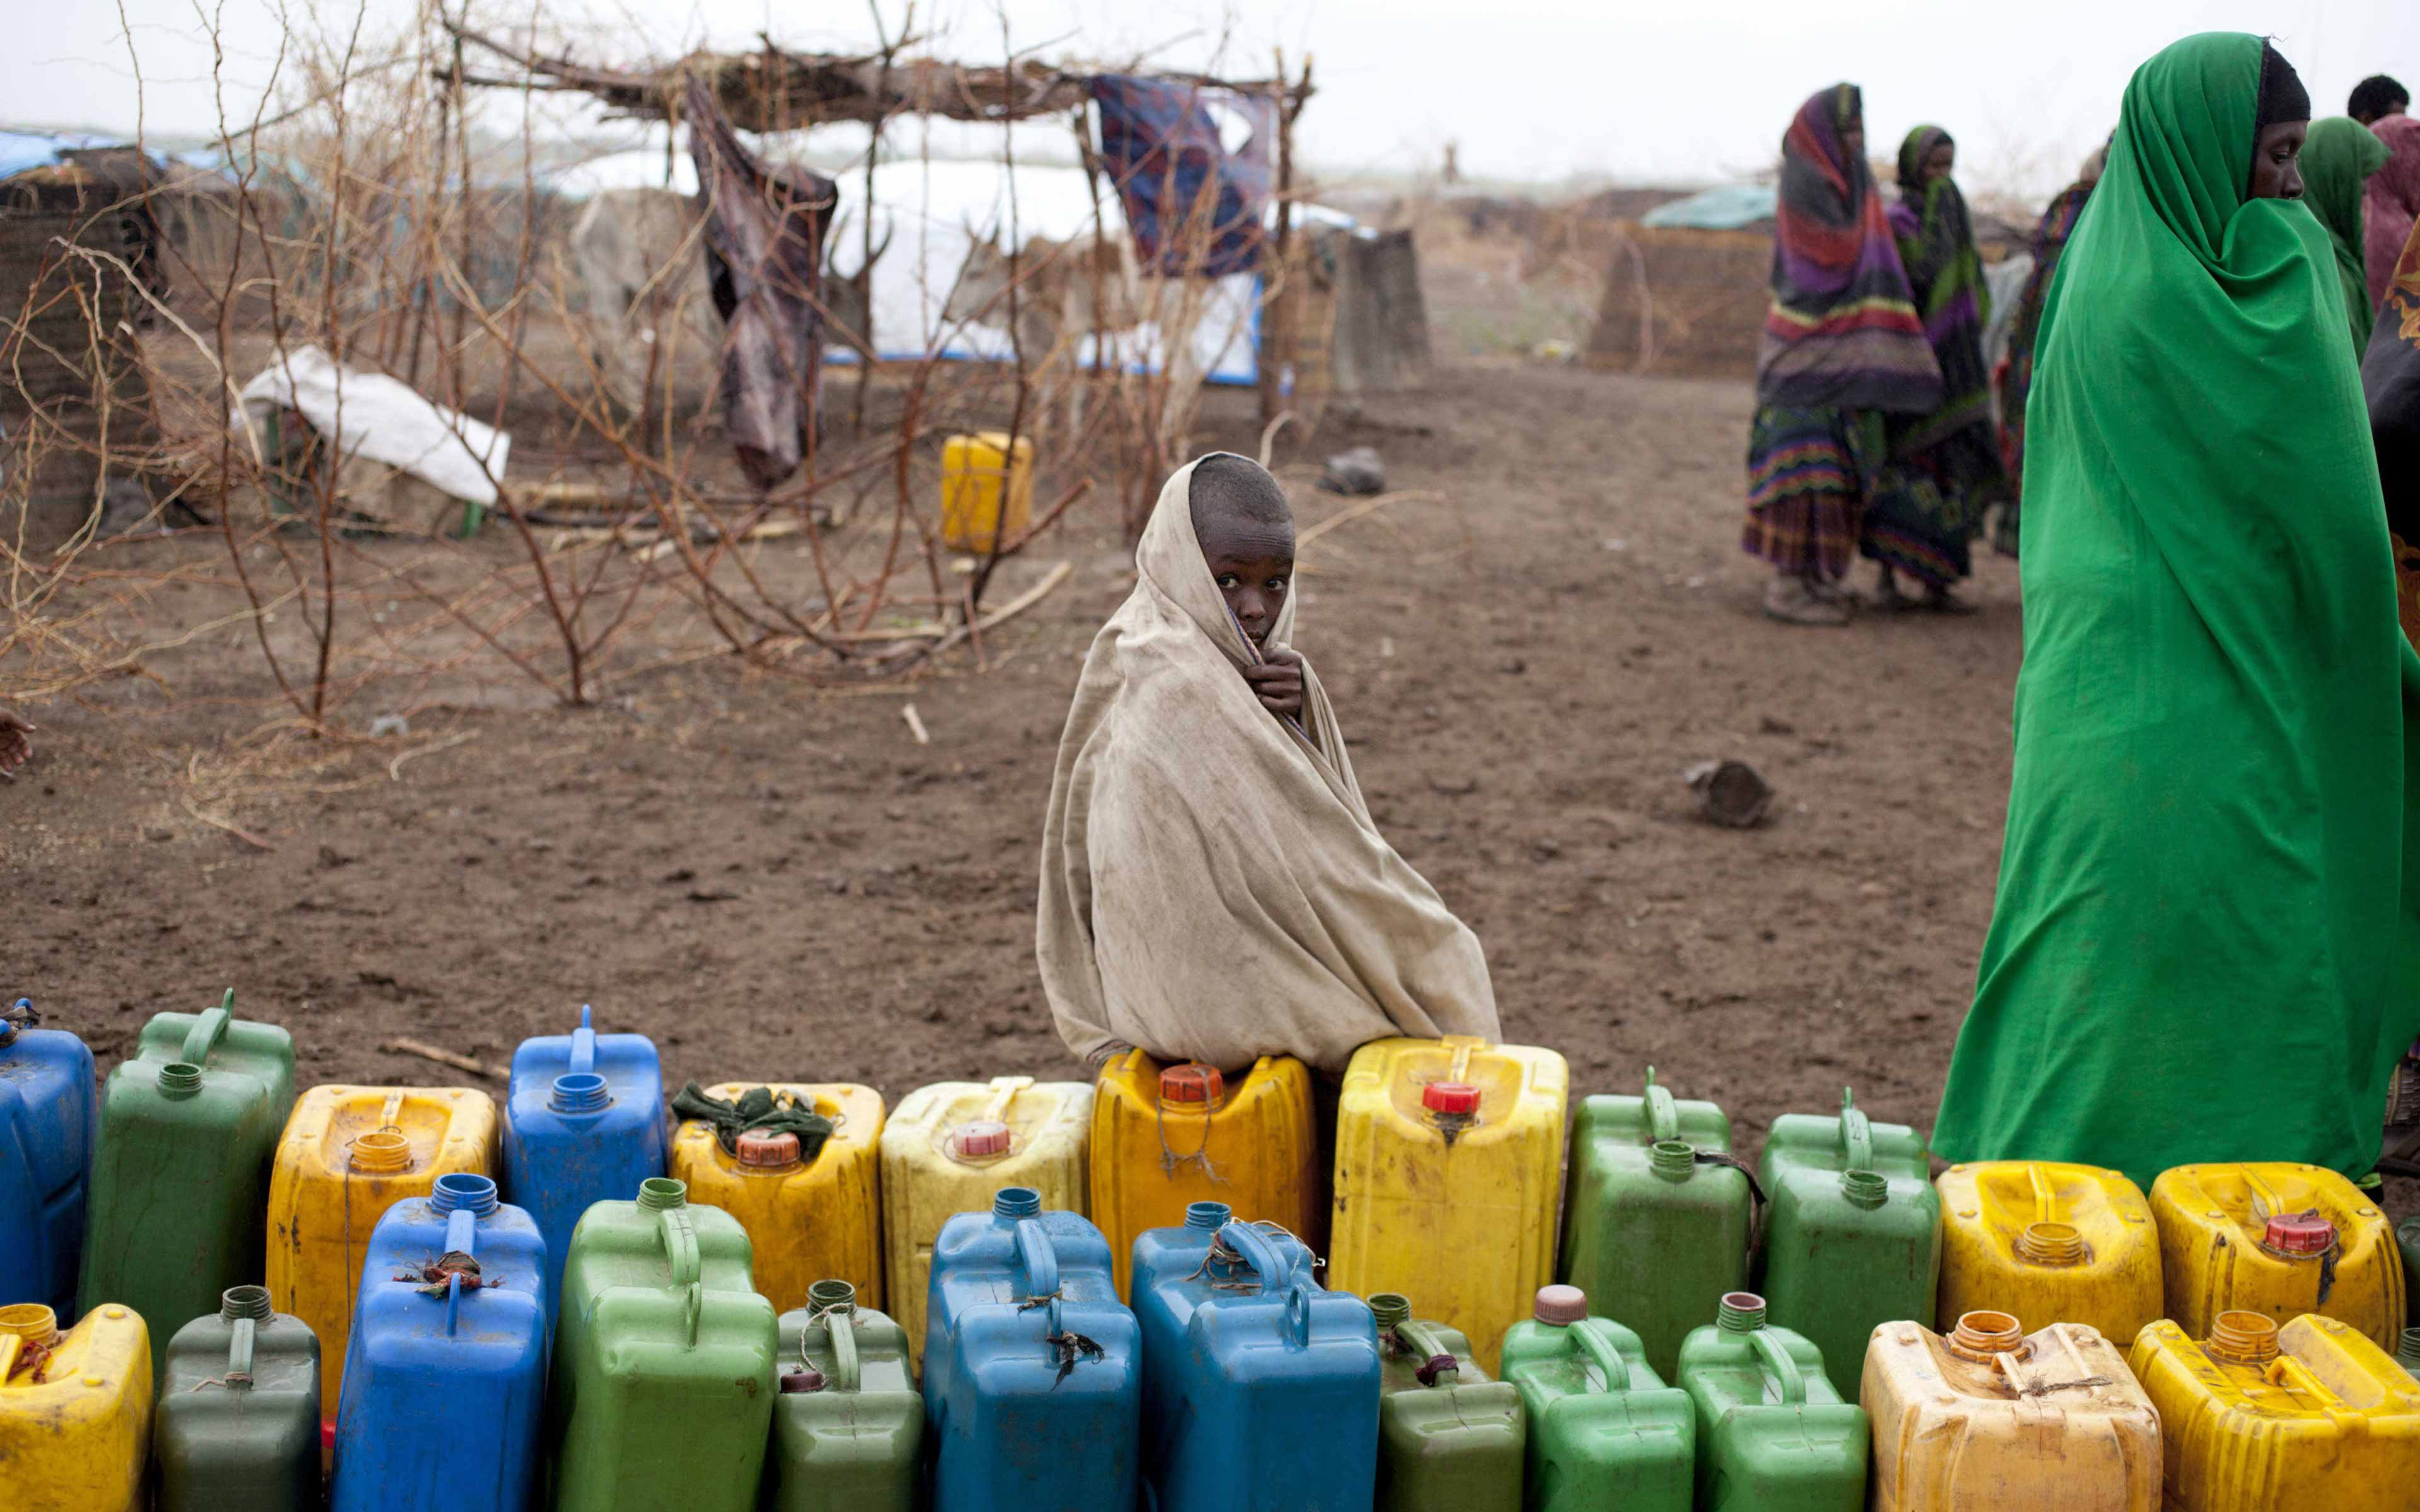 In the Siti Zone of Ethiopia's Somali region, a boy waits next to a collection of water jugs lined up to be filled with water trucked in by Oxfam and stored in a tank.